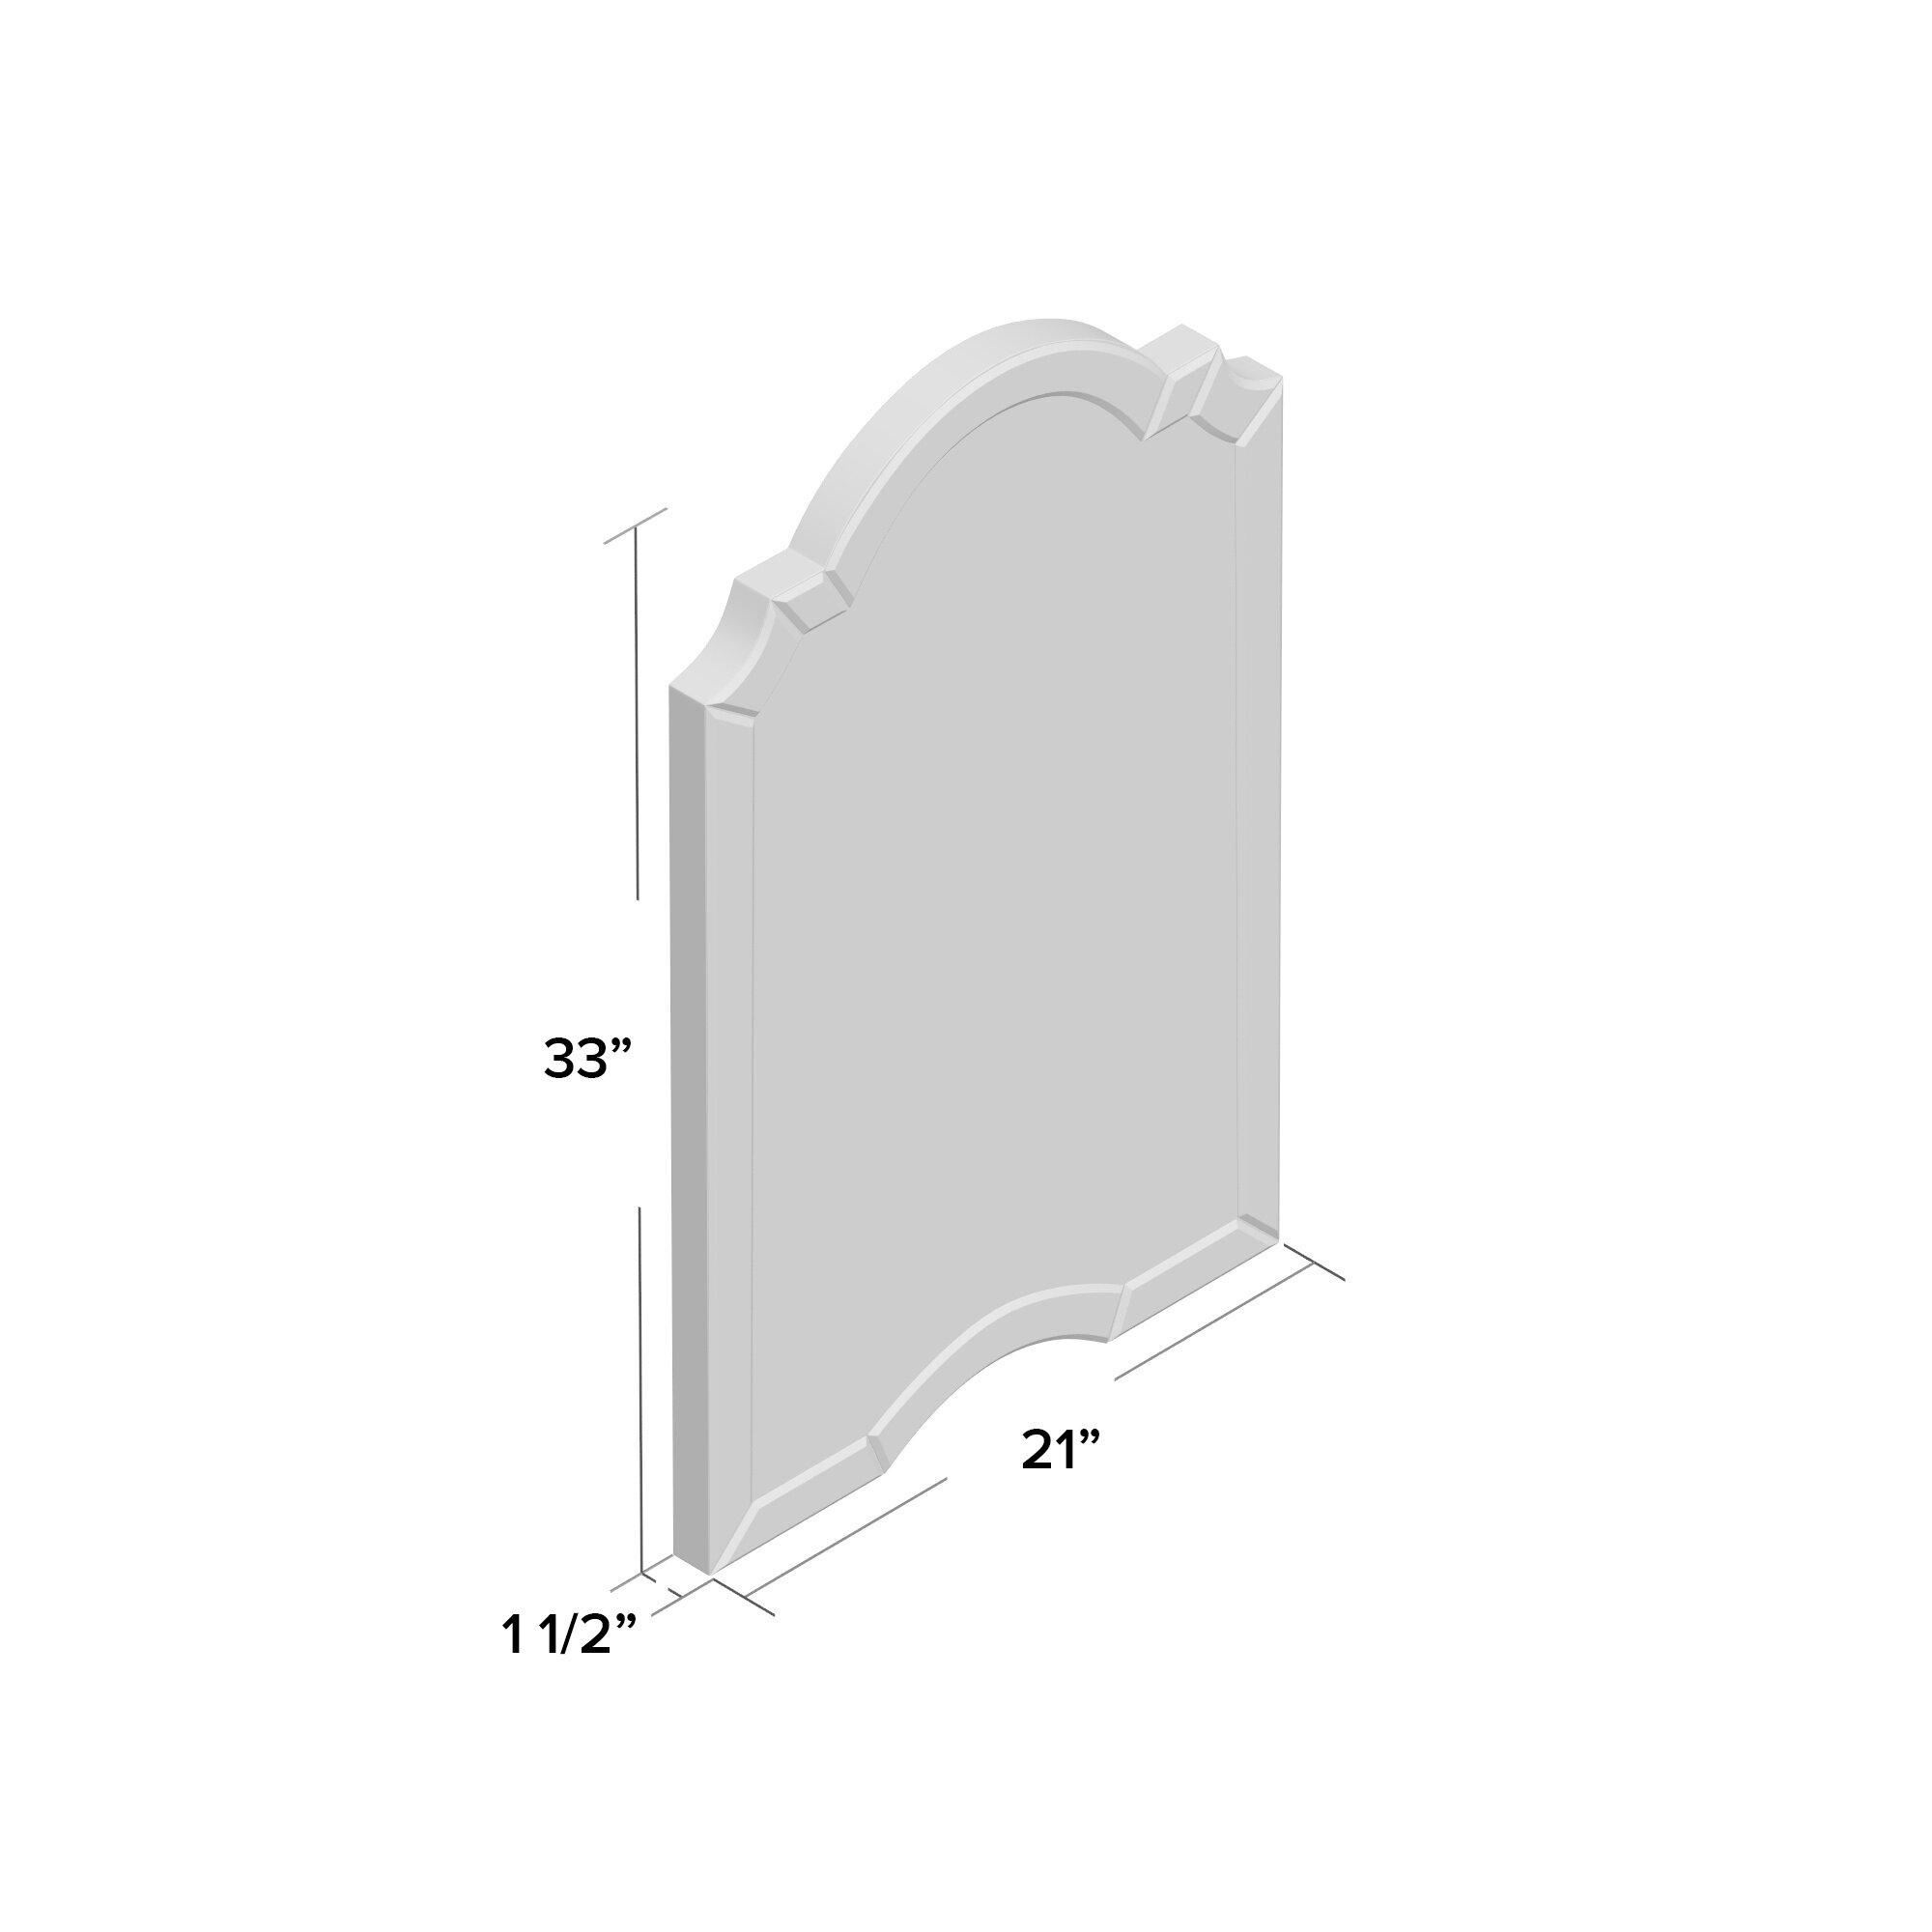 Willa Arlo Interiors Ekaterina Arch/crowned Top Wall Mirror Regarding Ekaterina Arch/crowned Top Wall Mirrors (Image 19 of 20)